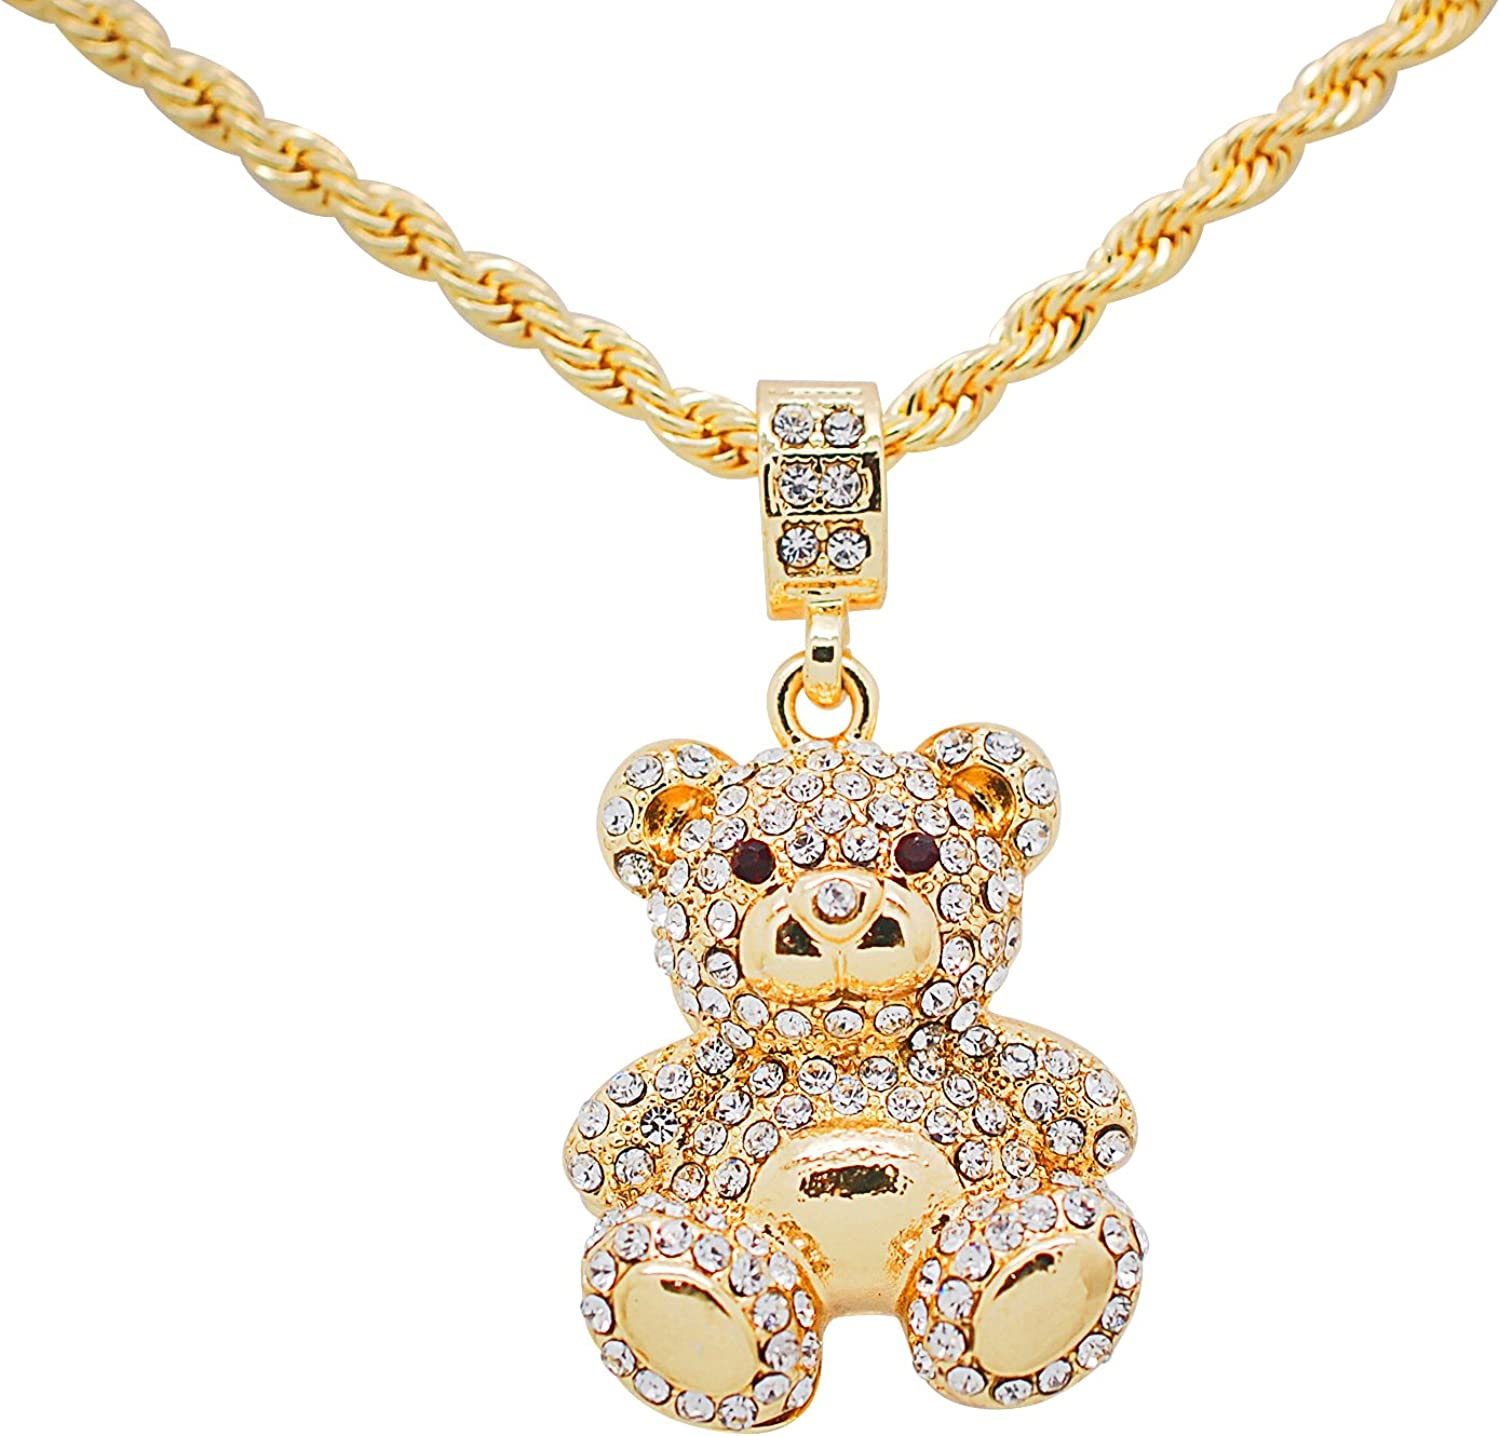 Gold Silver Woman Lady Bear Pendant Crystal Chain Necklace Earrings Jewelry Set